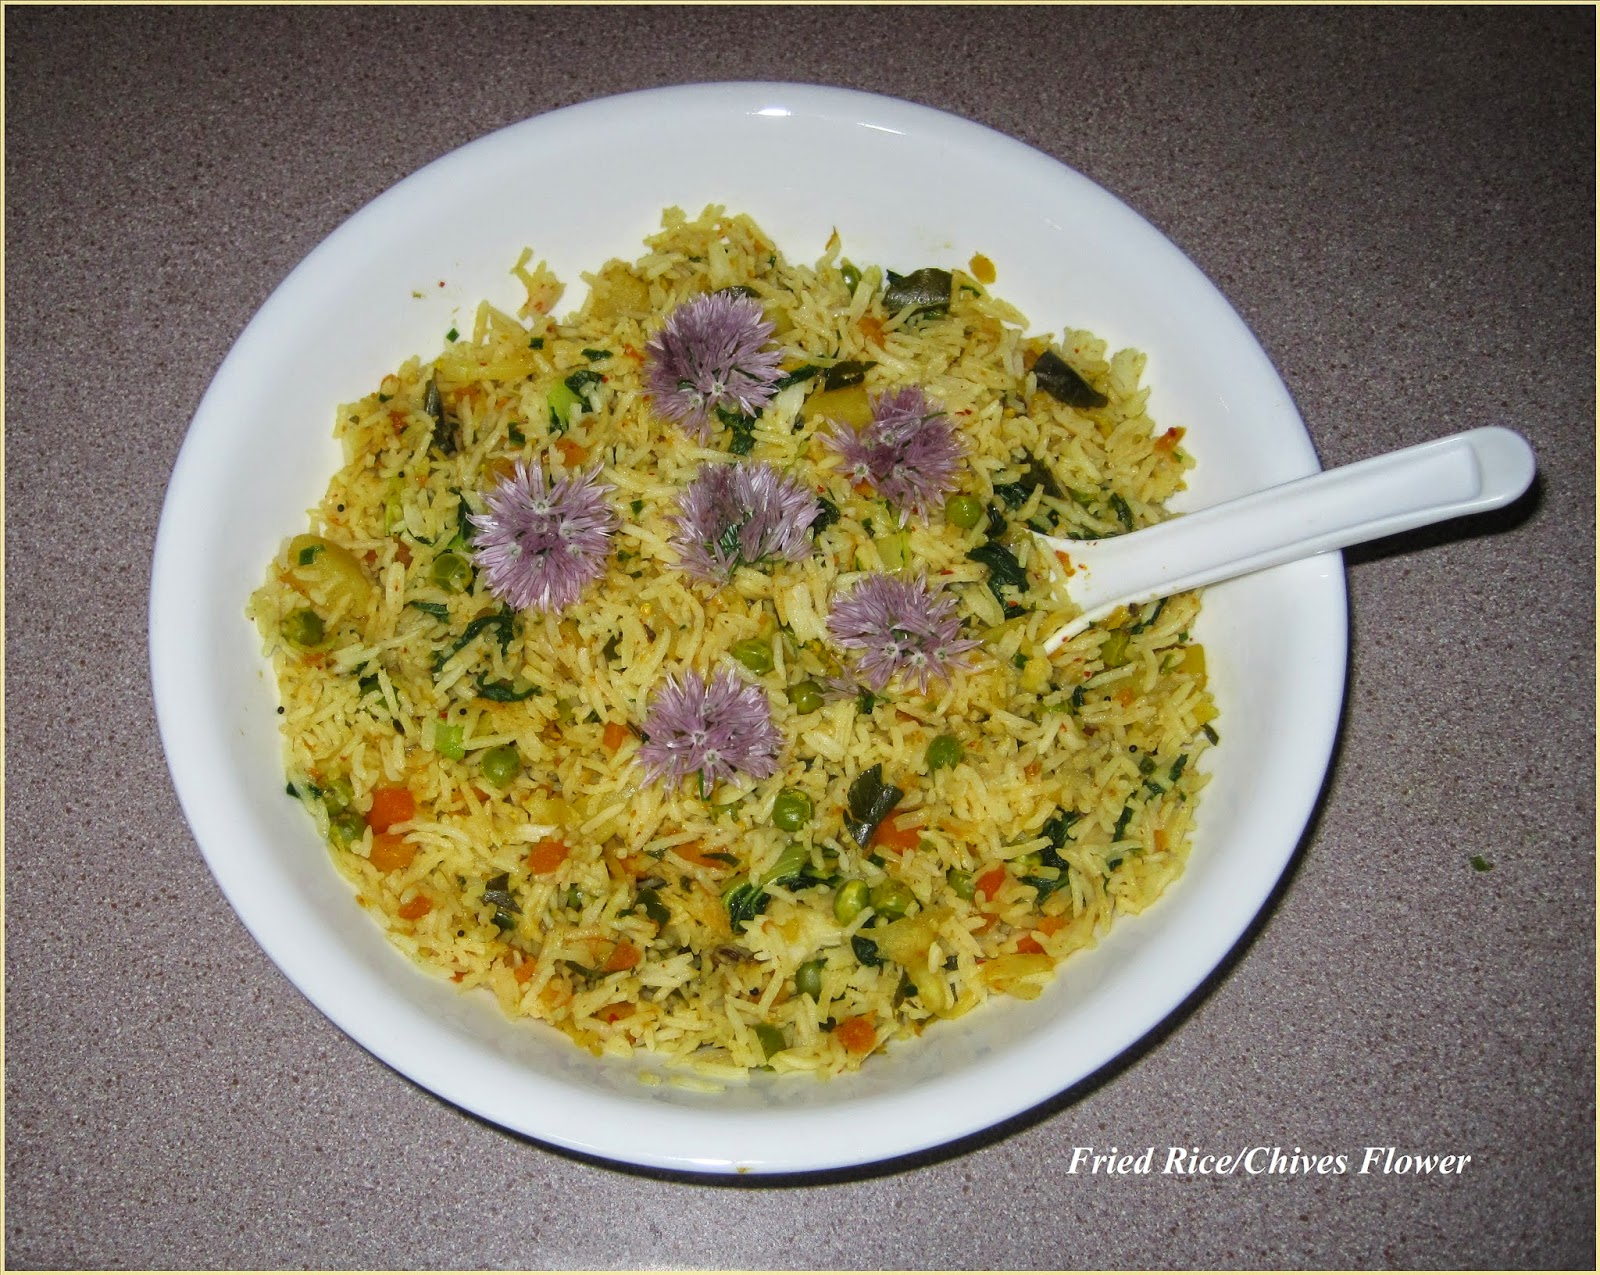 Ajantha's Food/Fried Rice with Vegetables and Chives